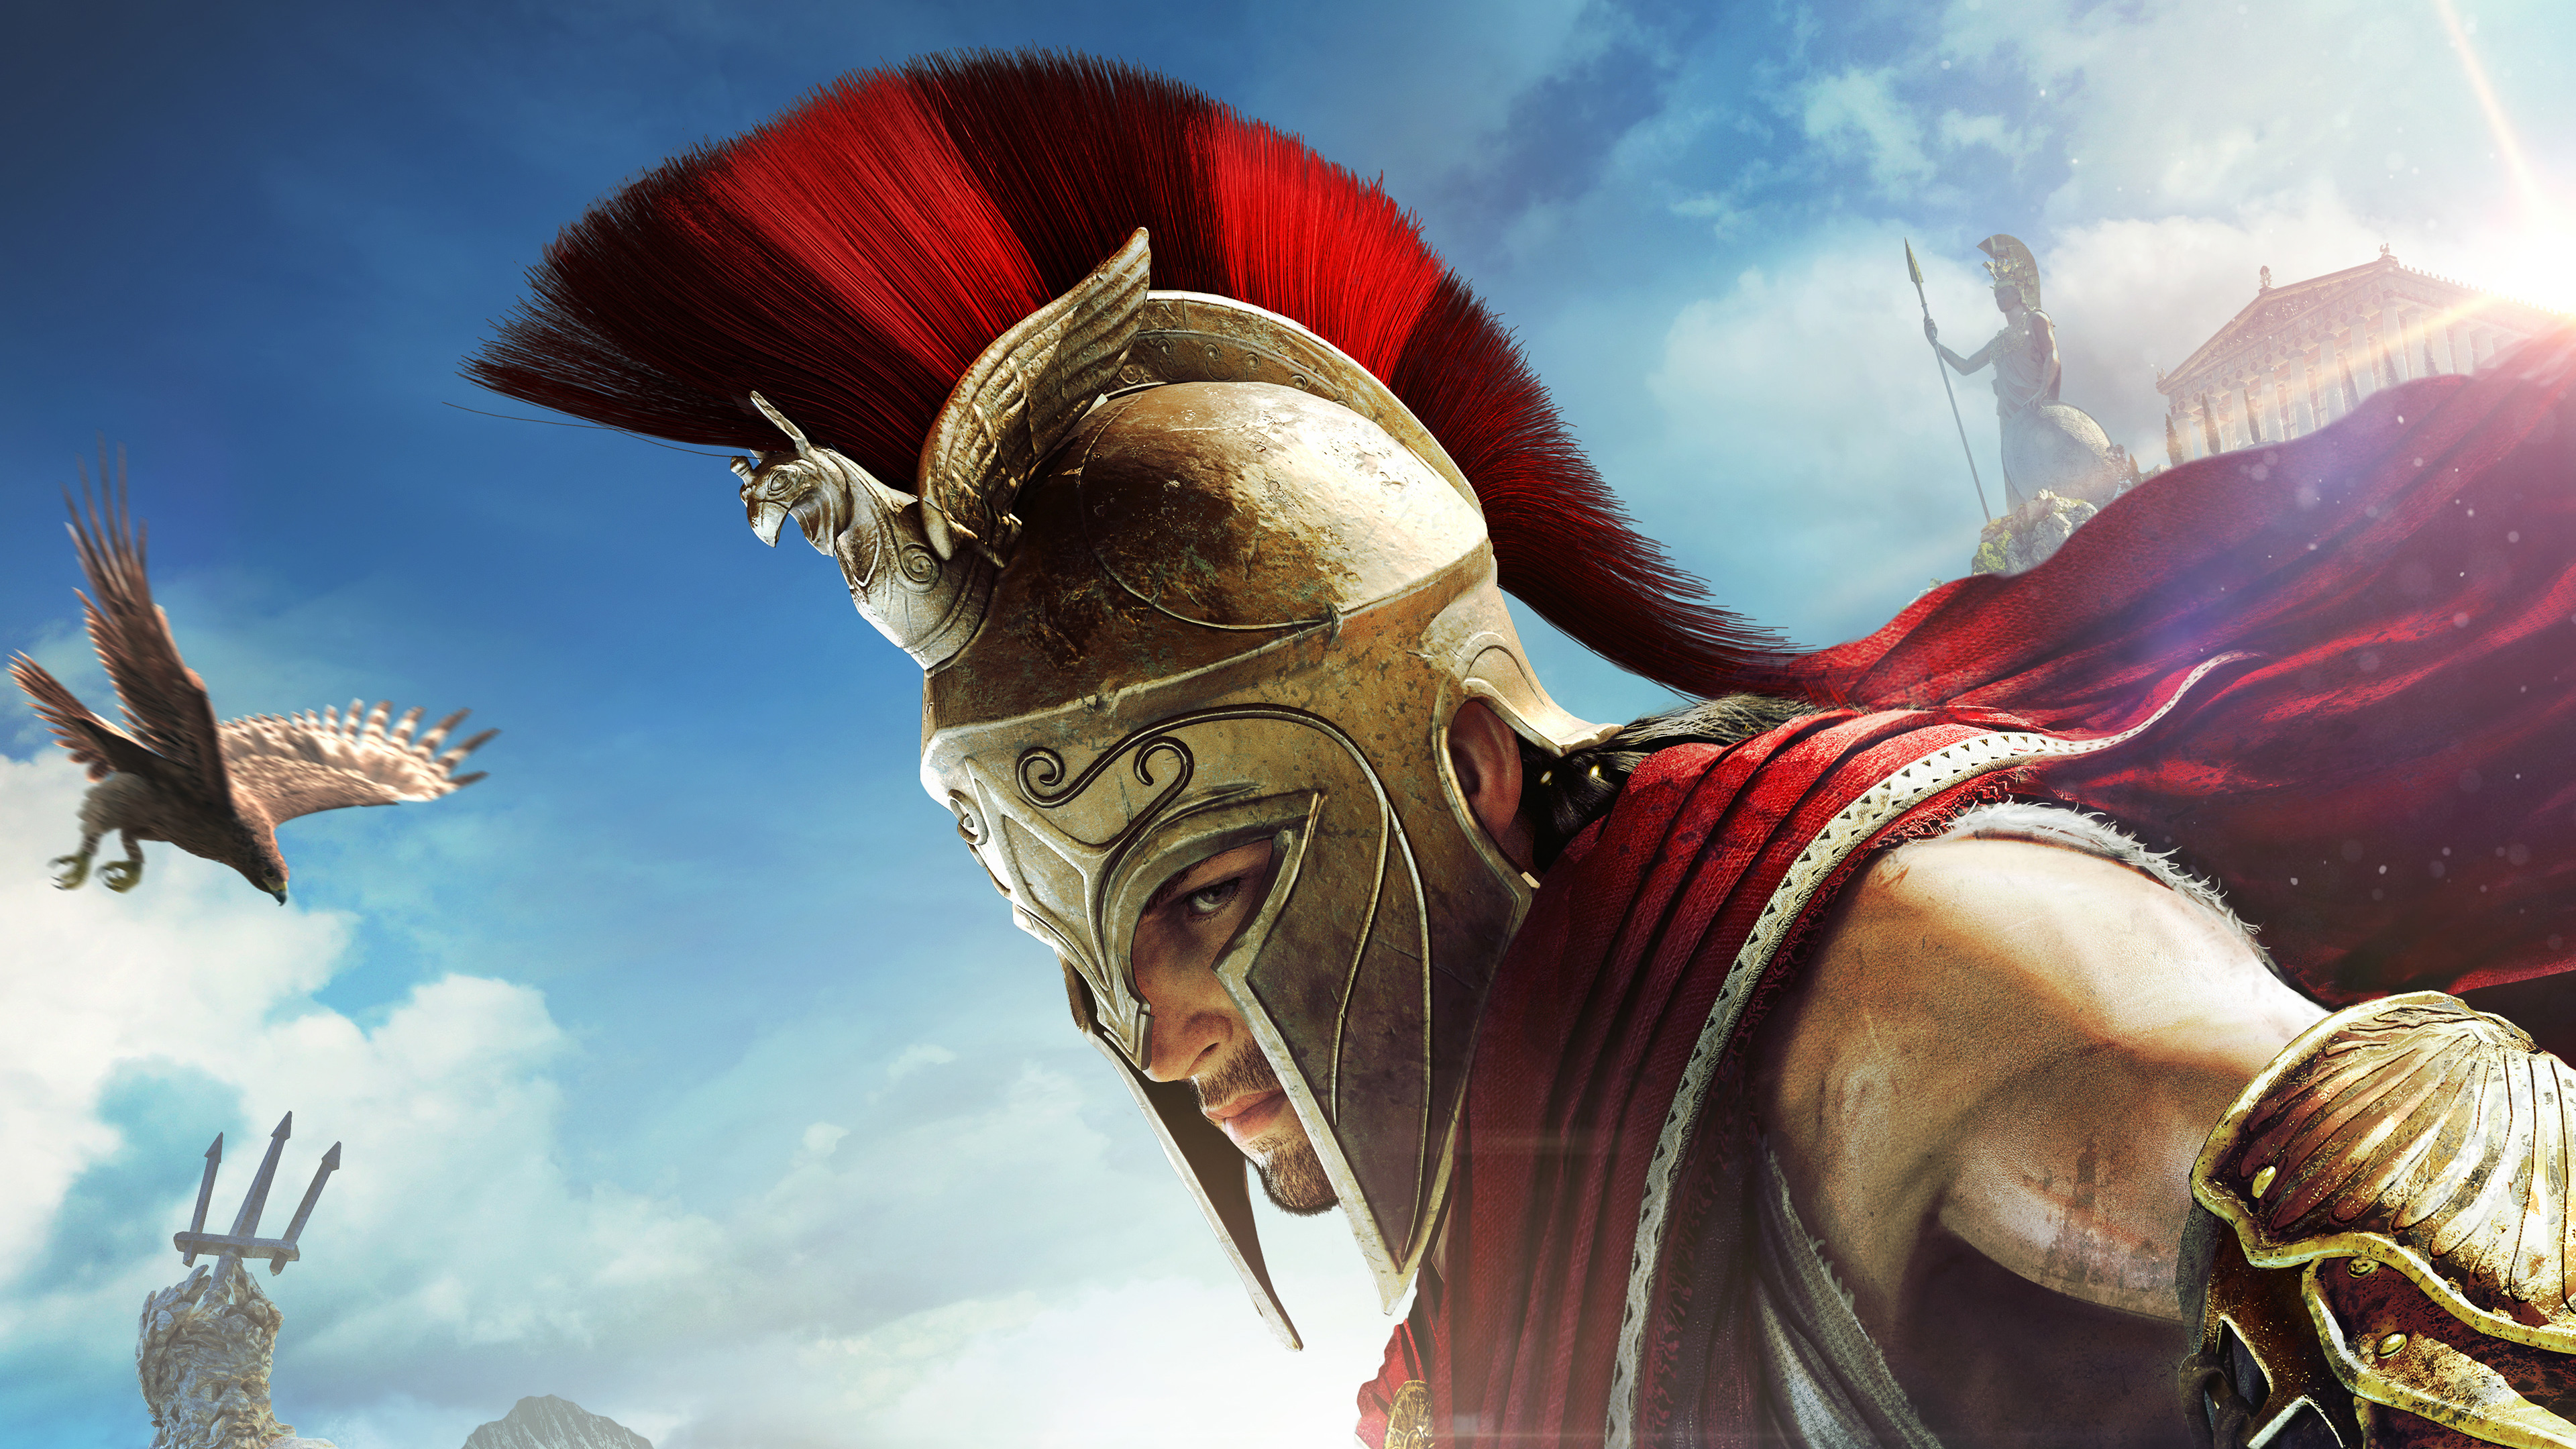 Wallpaper 4k 4k Assassins Creed Odyssey 2018 Games Wallpapers 4k